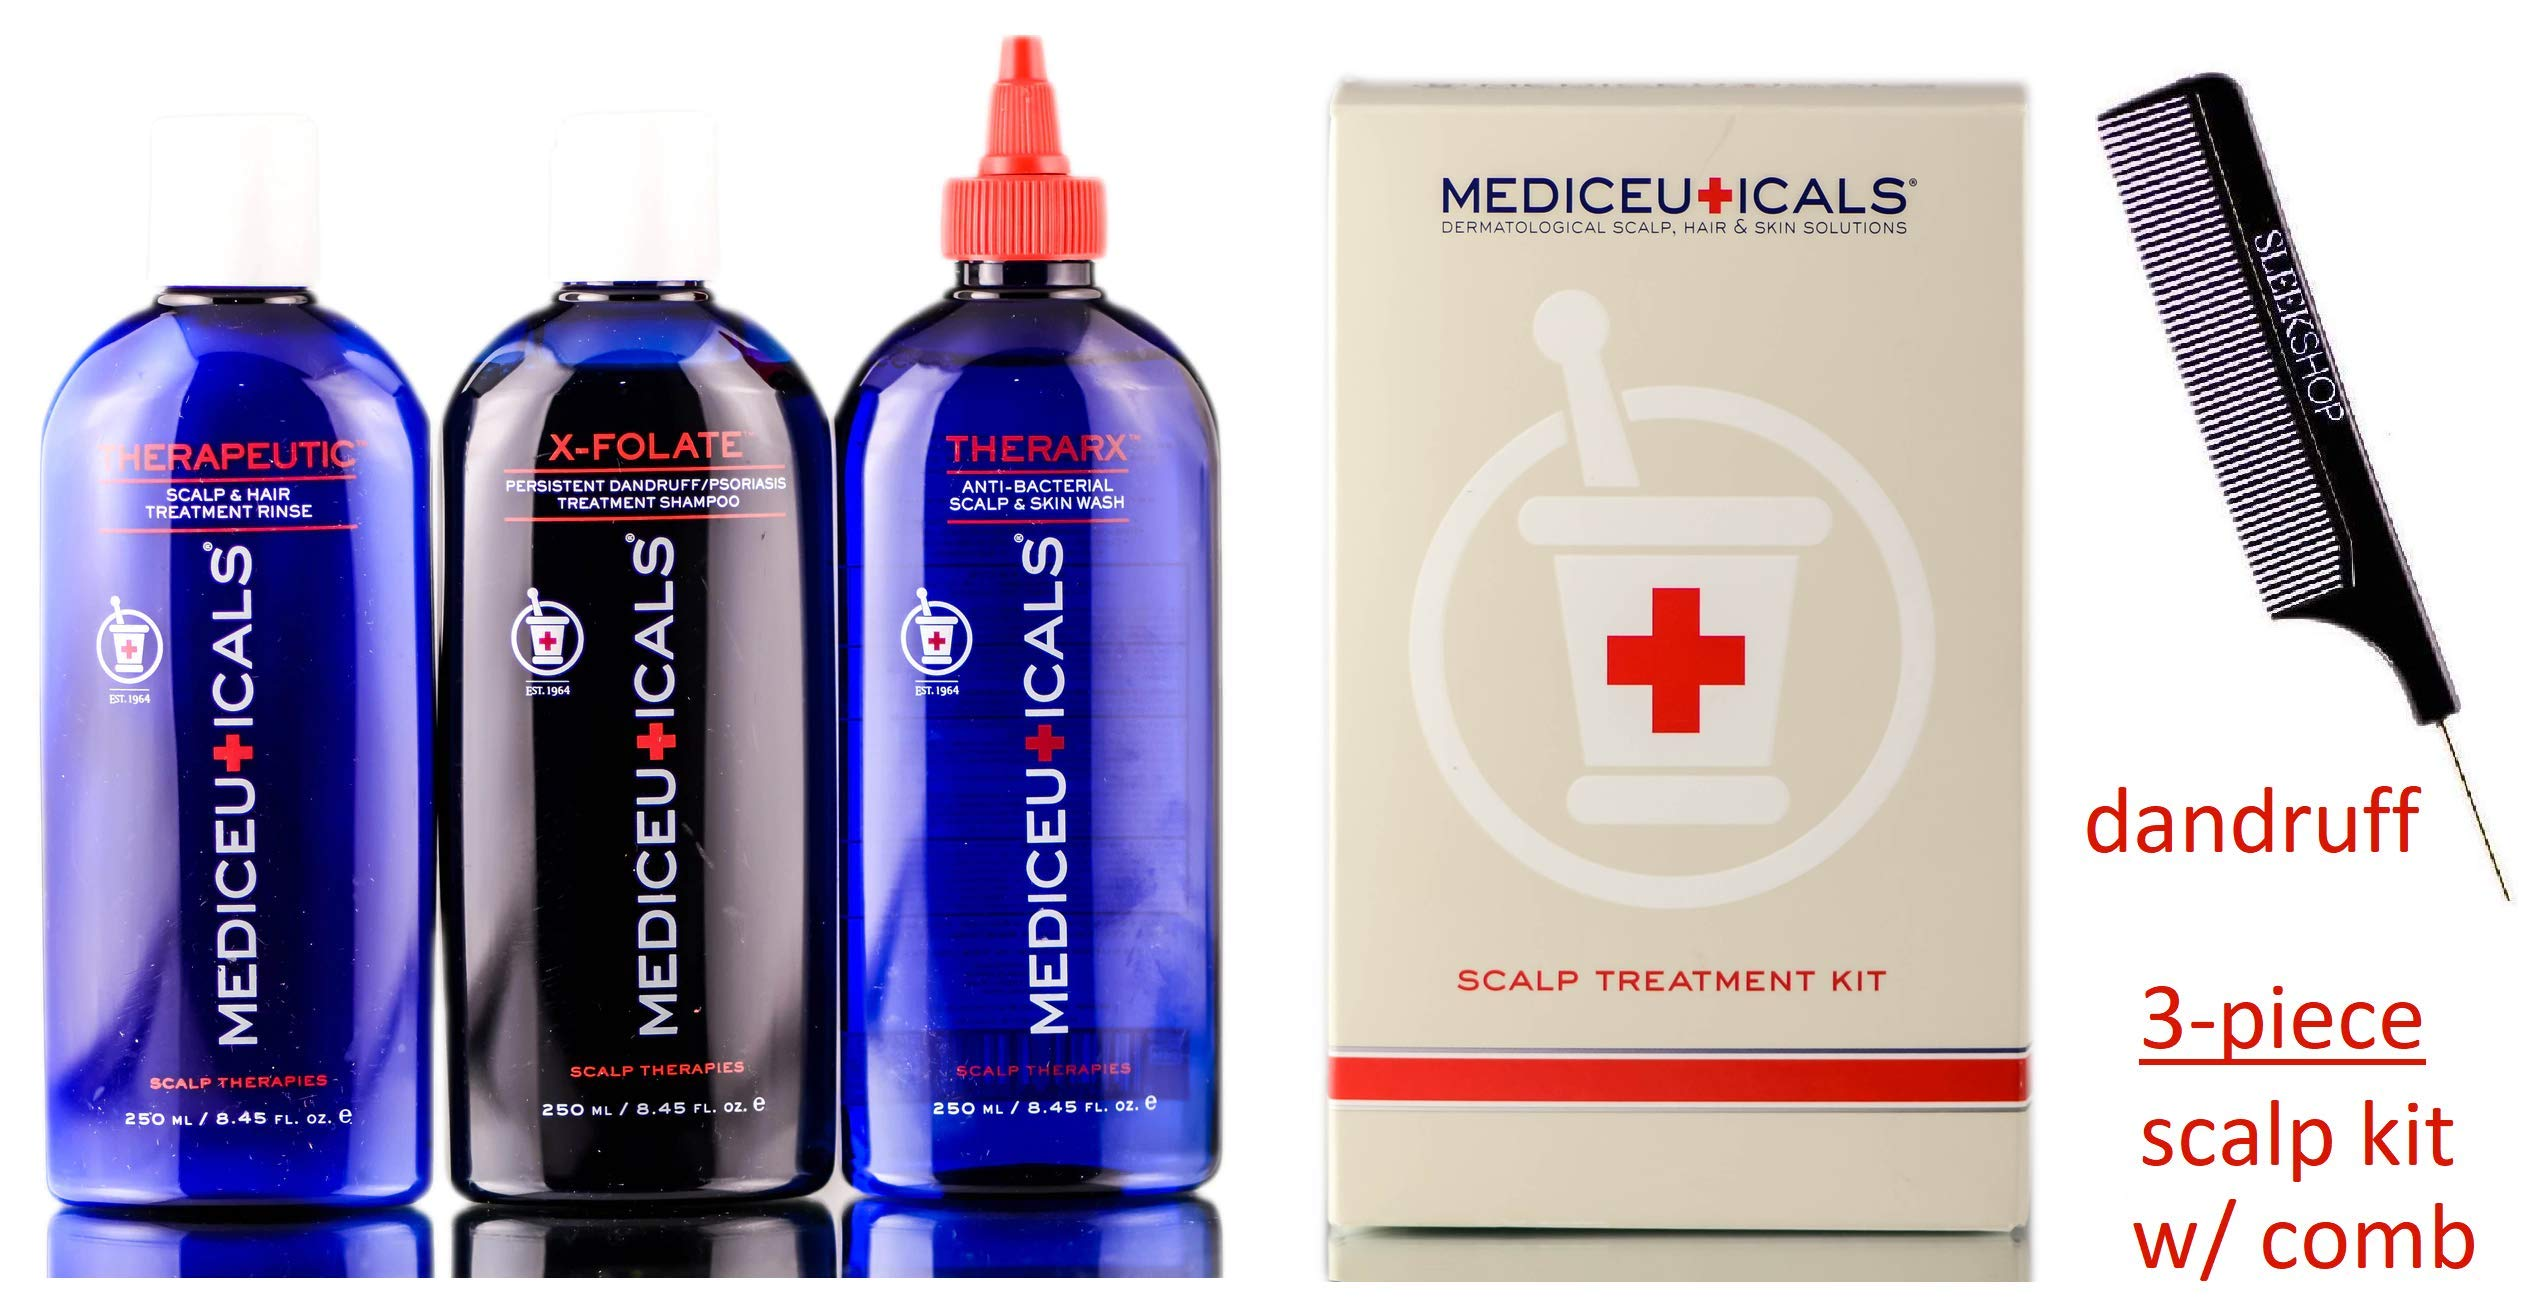 Therapro Mediceuticals 3-piece SCALP TREATMENT KIT for DANDRUFF Hair (STYLIST KIT) (DANDRUFF KIT) by Therapro MEDIceuticals